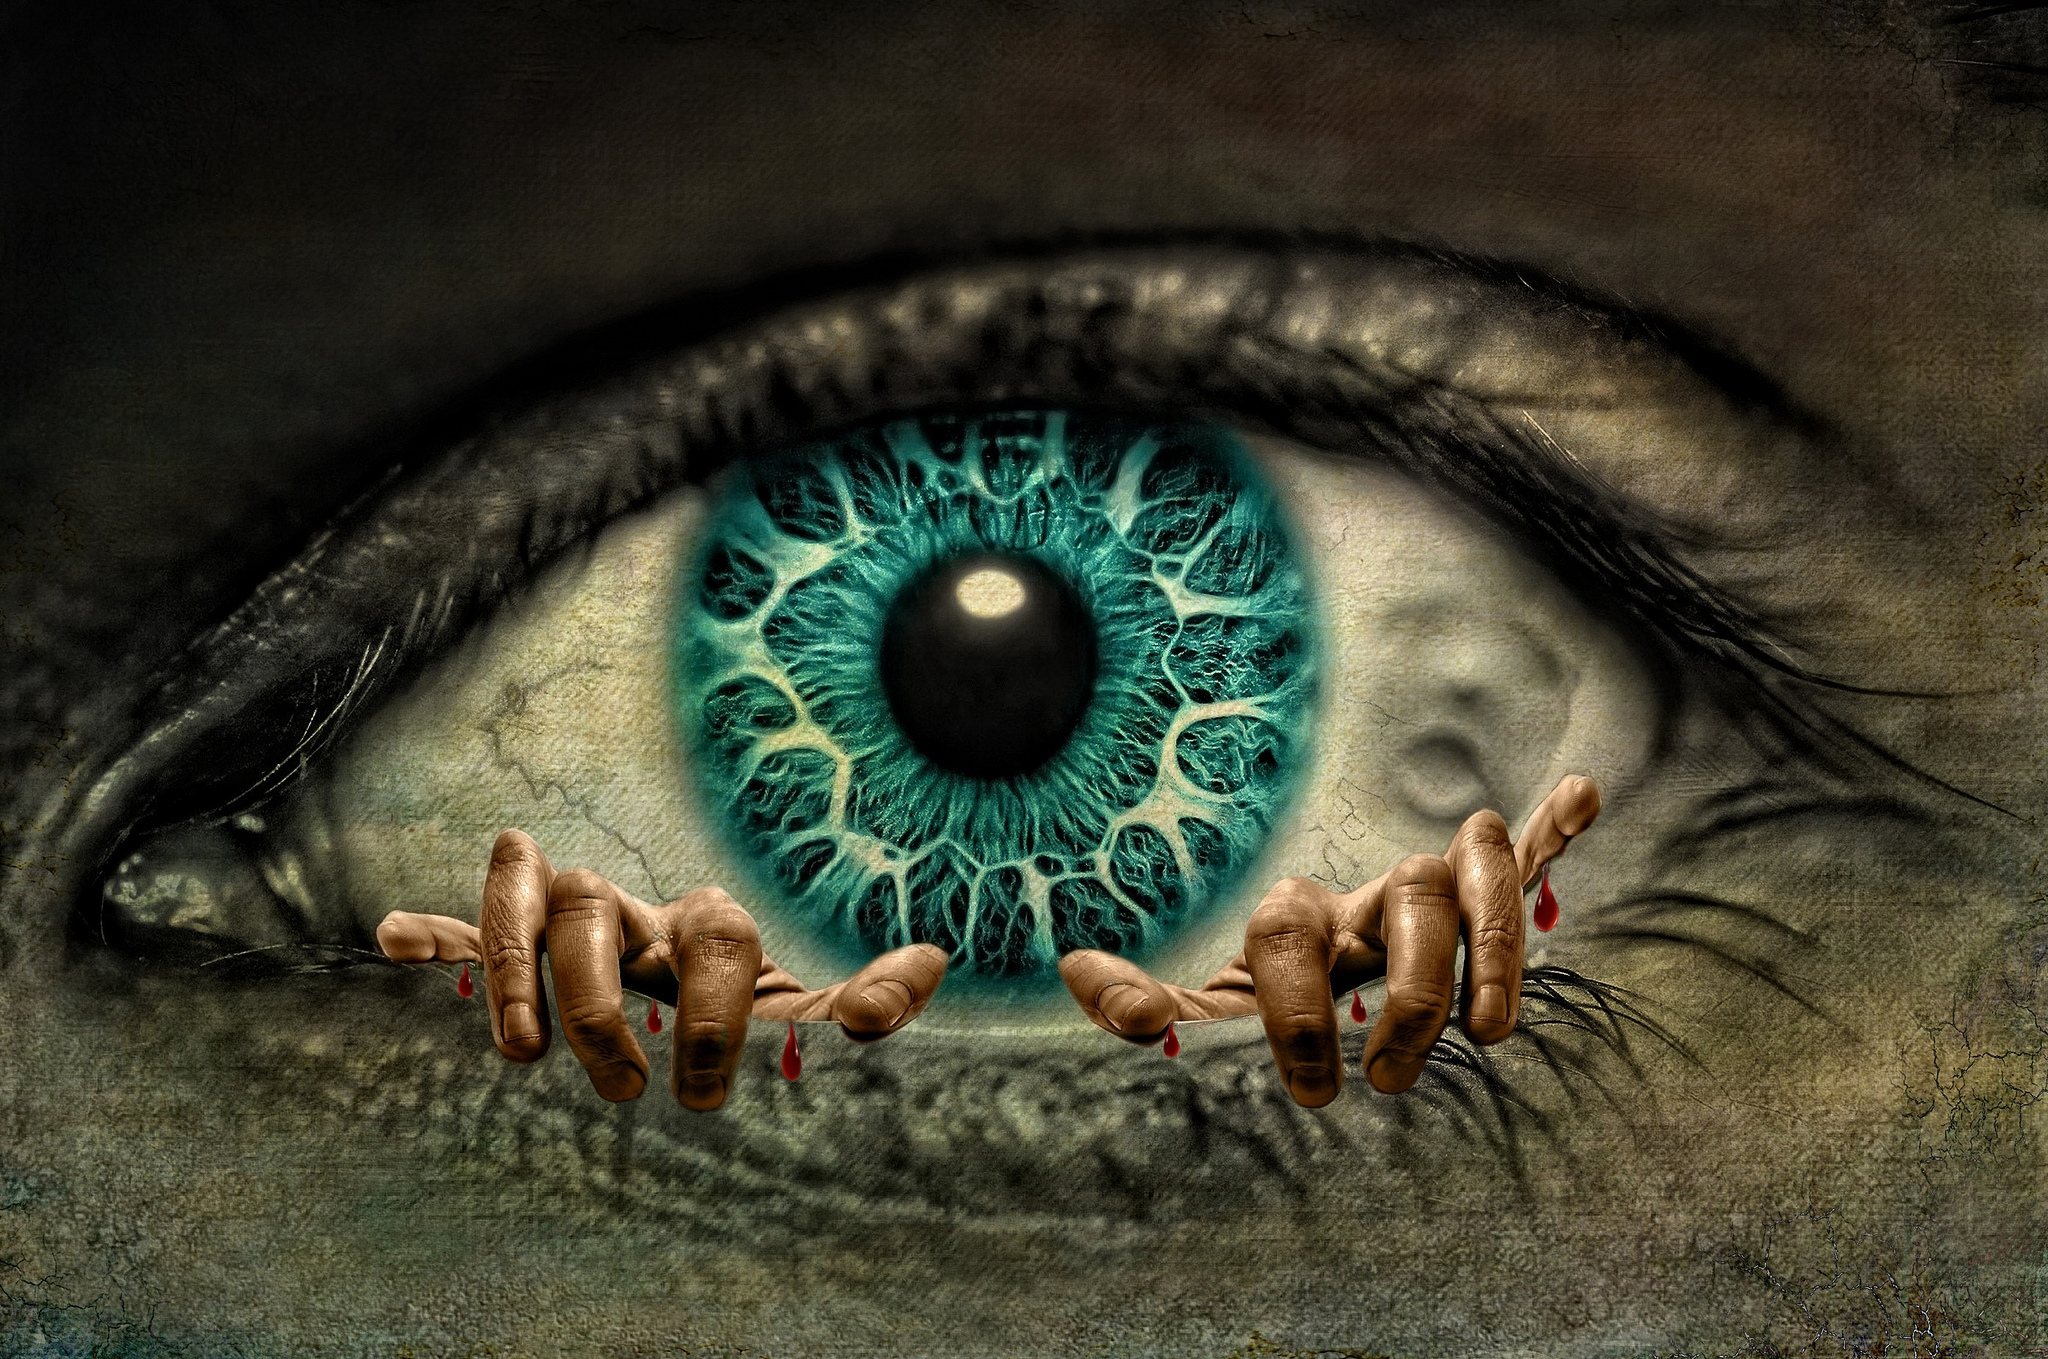 Creepy Eye Hd Wallpaper Background Image 2048x1359 Id 878447 Wallpaper Abyss